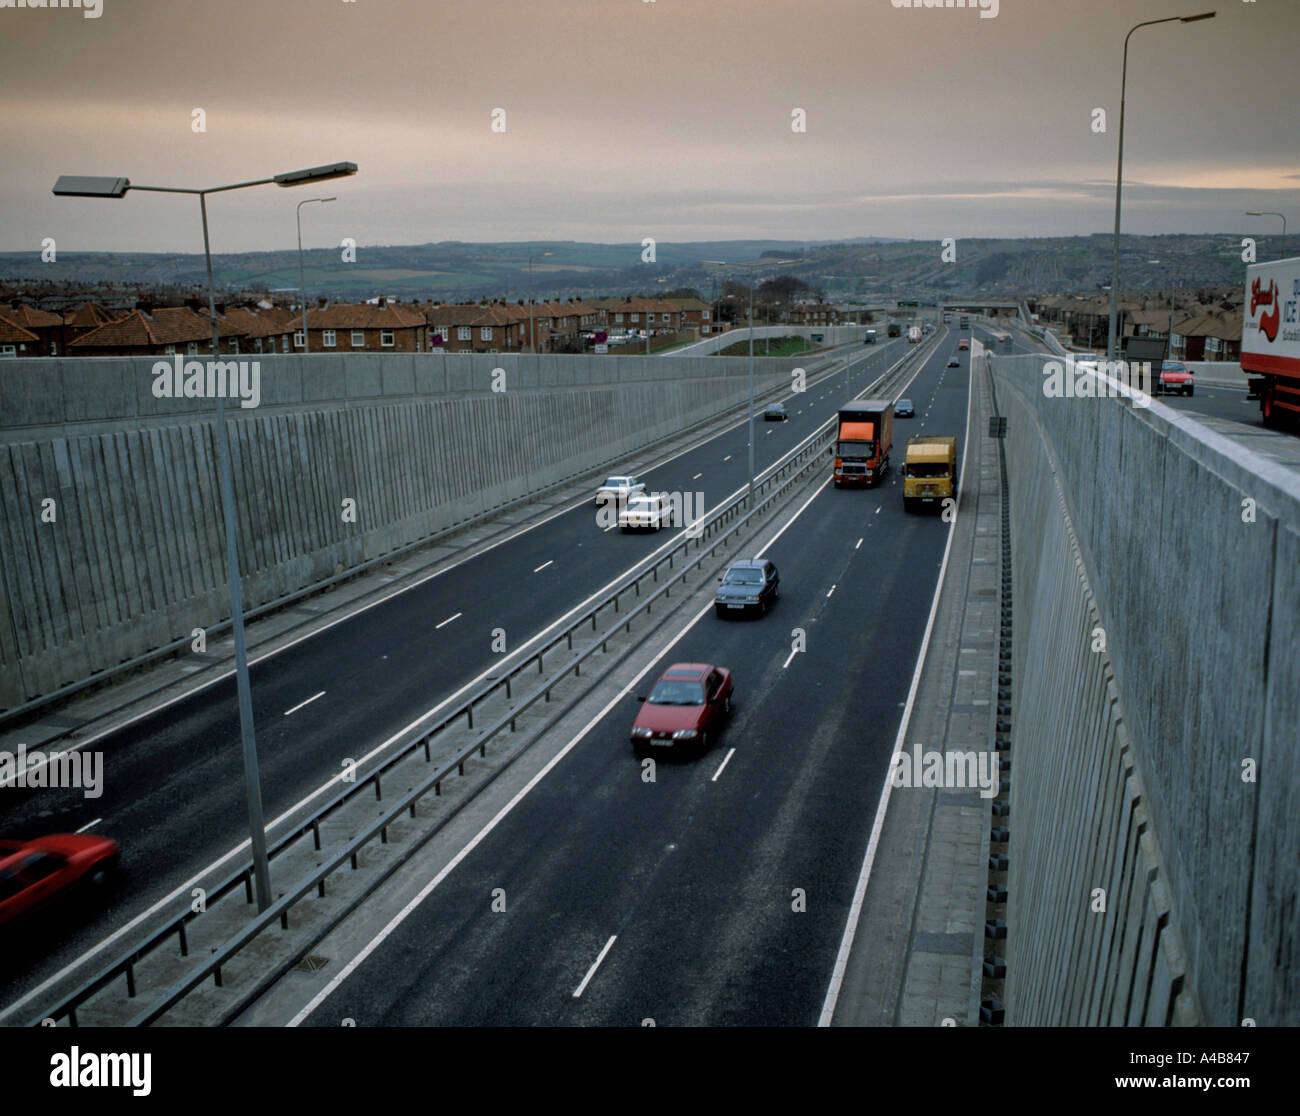 Trunk road intersection showing slip roads, concrete retaining walls, noise barriers, etc. Stock Photo